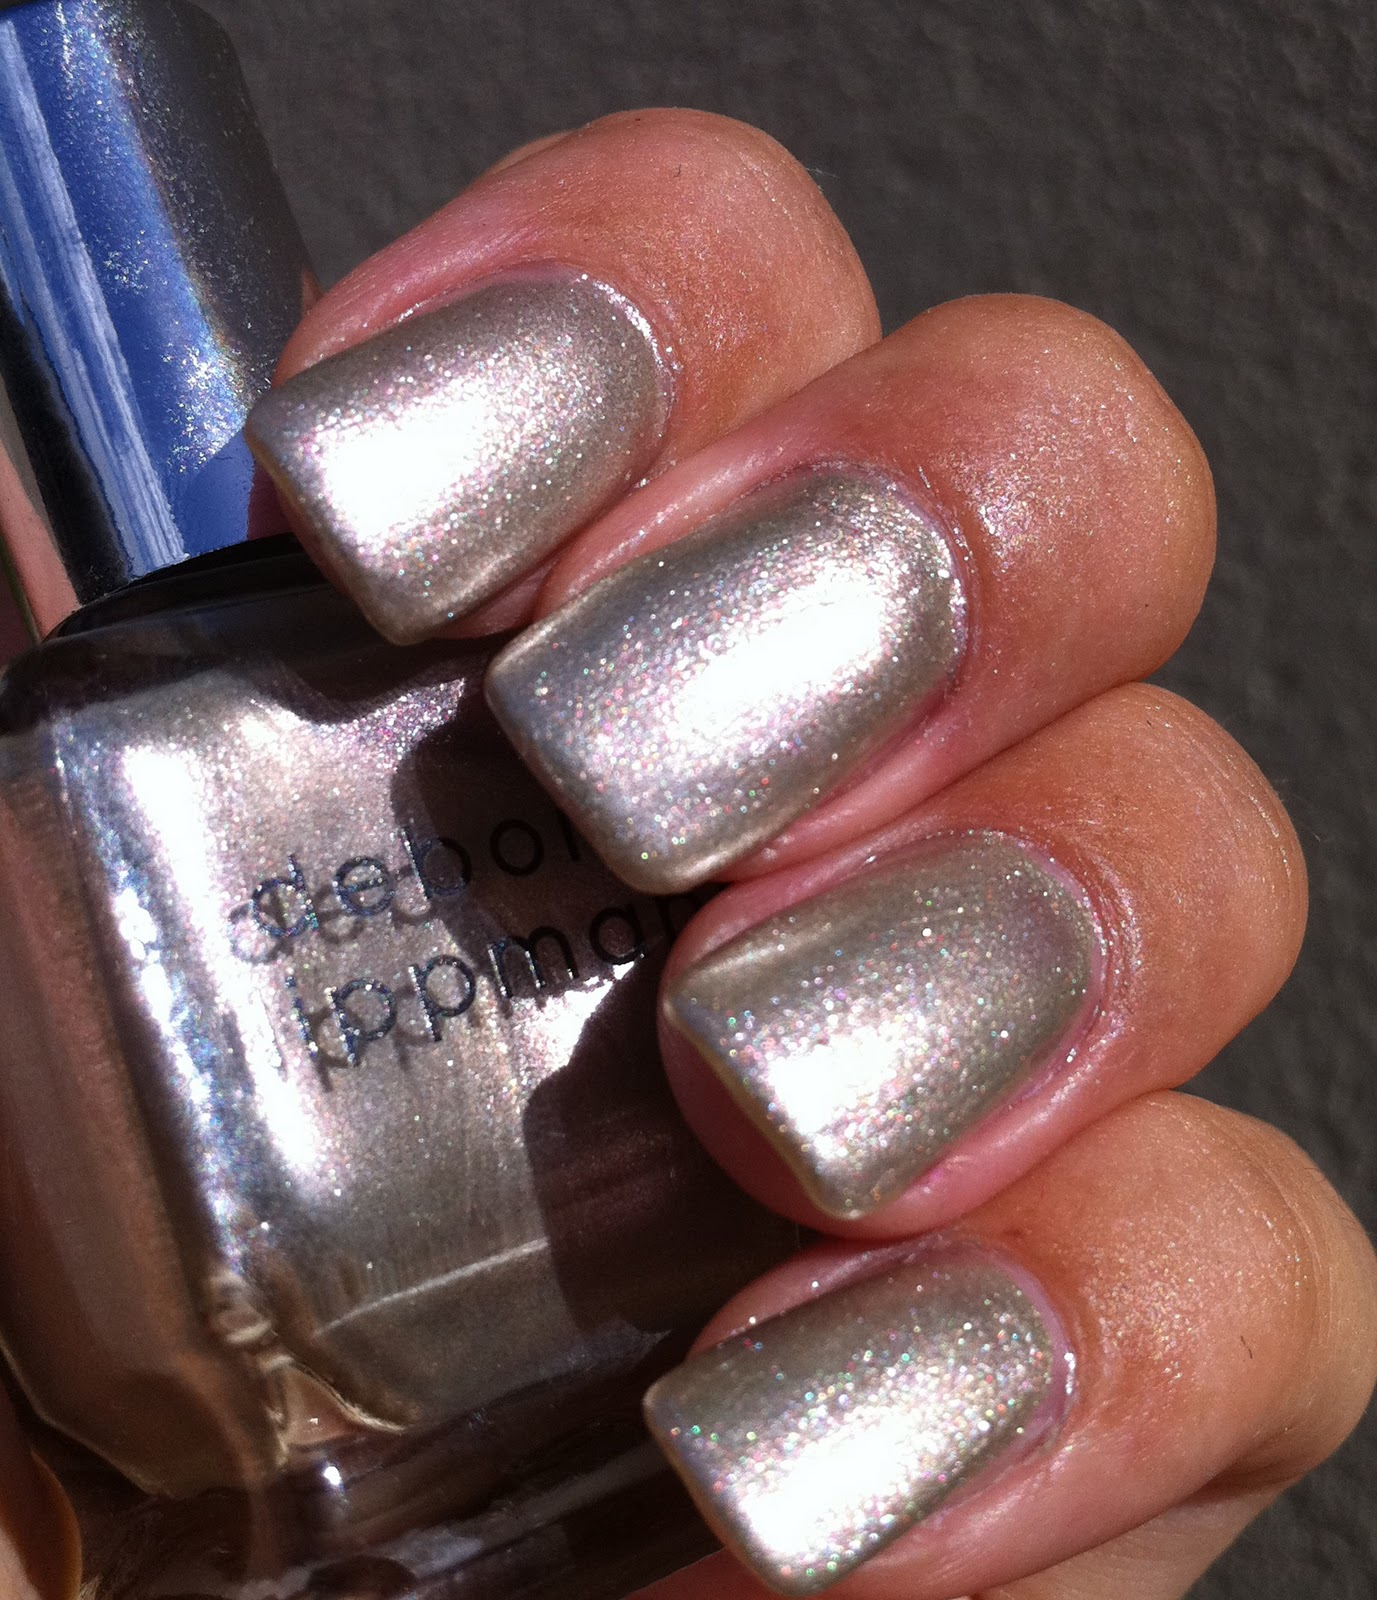 Nice Best Tape To Use For Nail Art Tall Acrylic Nail Polish Stand Shaped What Tape To Use For Nail Art Taylor Nail Polish Old Walmart Nail Polish BrightHow To Get Nail Polish Not To Chip Glam Polish: Deborah Lippmann   Believe \u0026amp; Jewel In The Crown